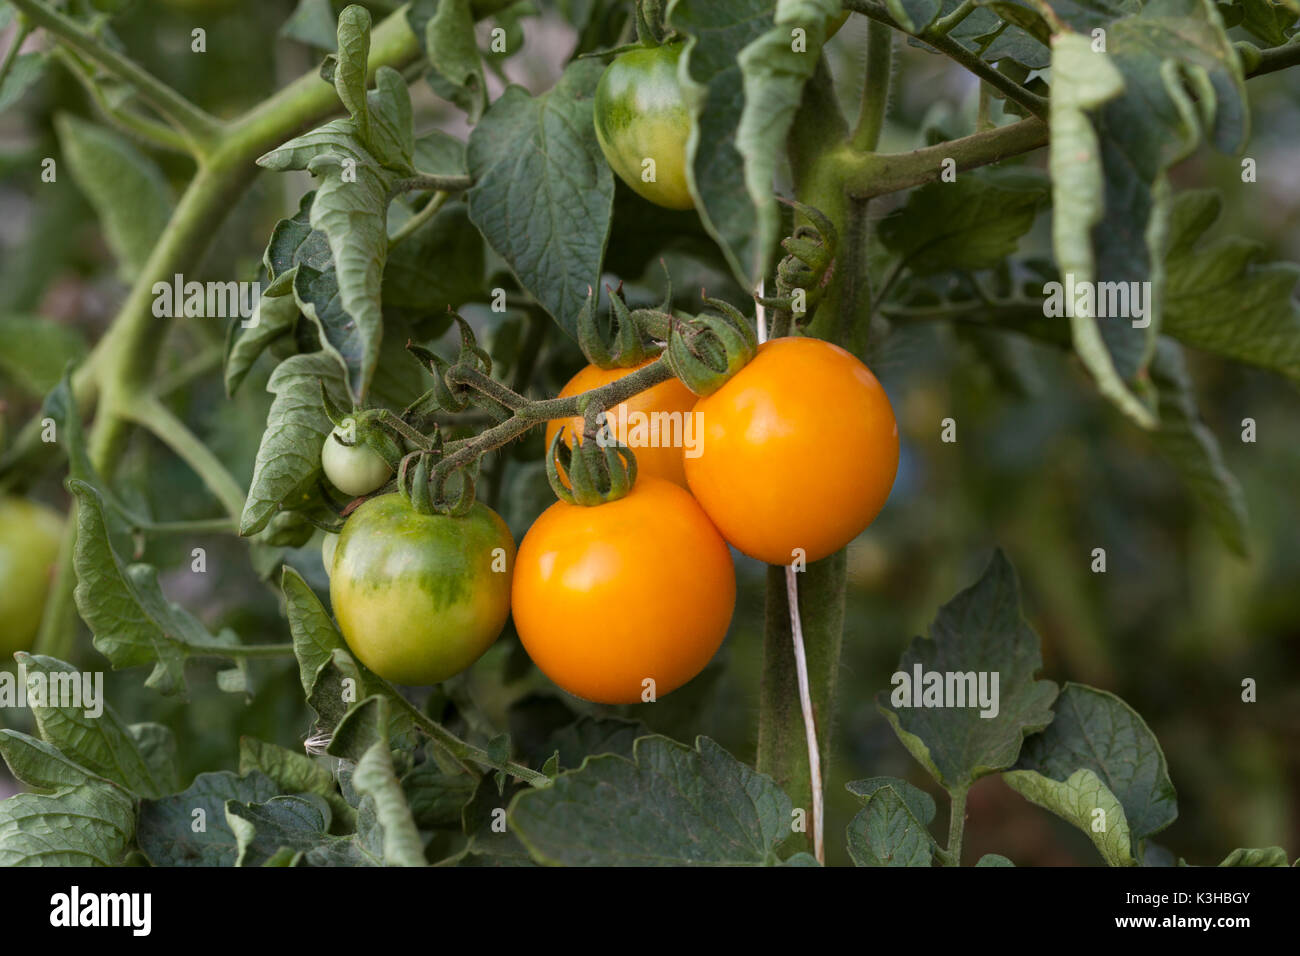 Ornage tomatoes plant close-up on green background - Stock Image